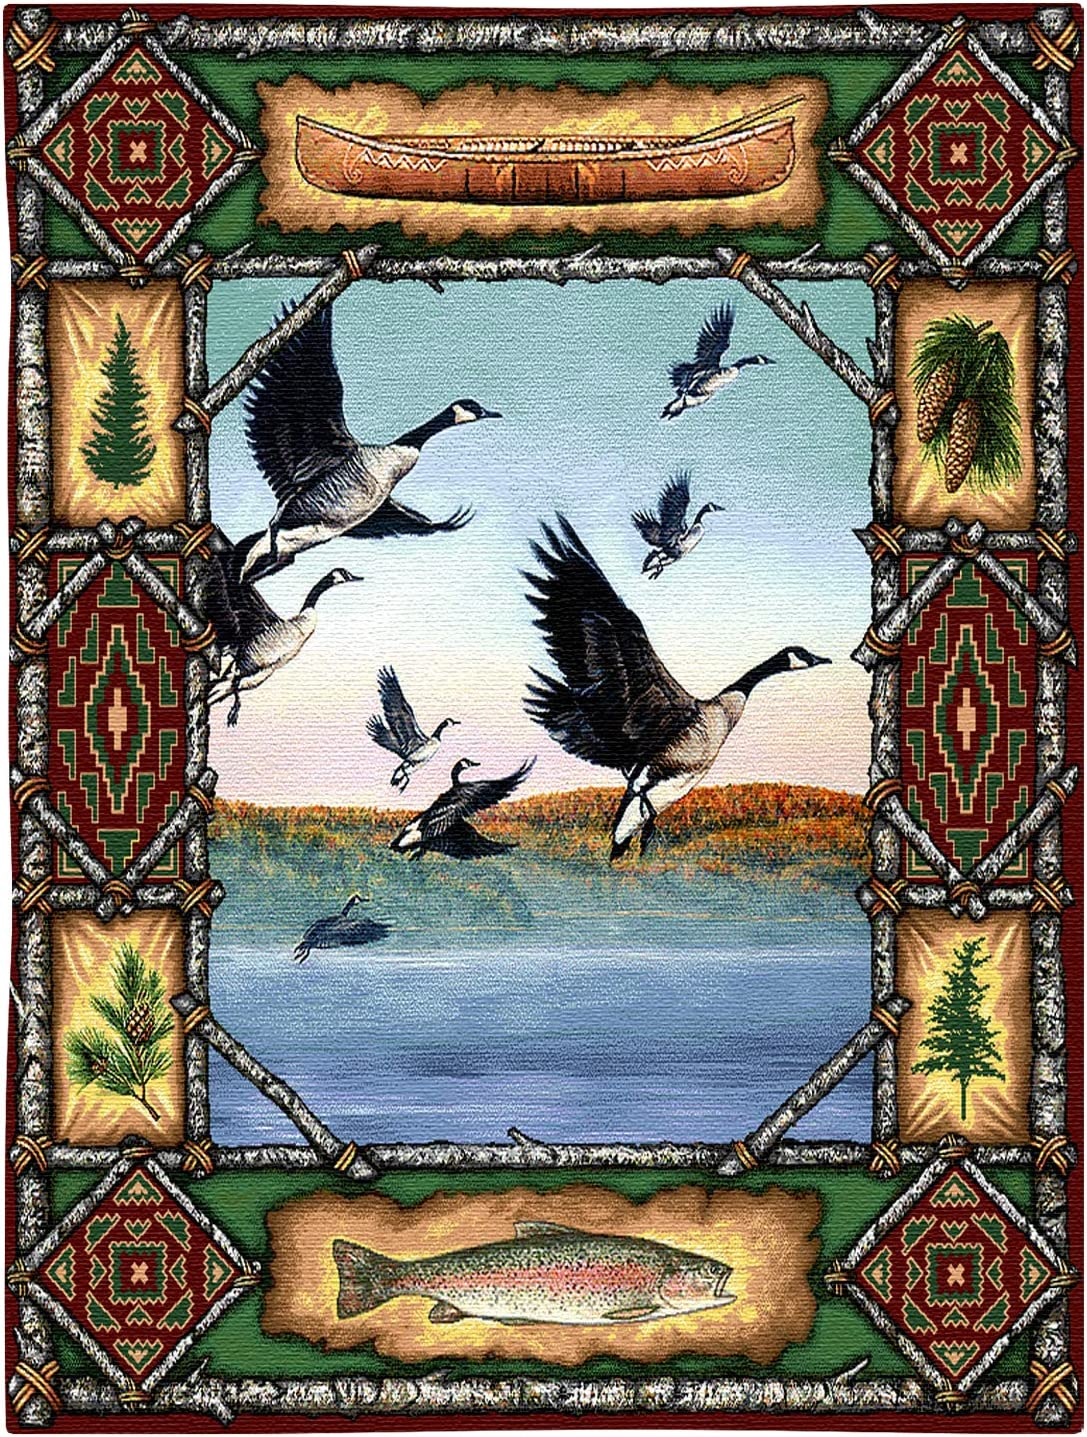 Geese Lodge   Woven Tapestry Wall Art Hanging   Rustic Hunting Cabin Decor   100% Cotton USA Size 33x26